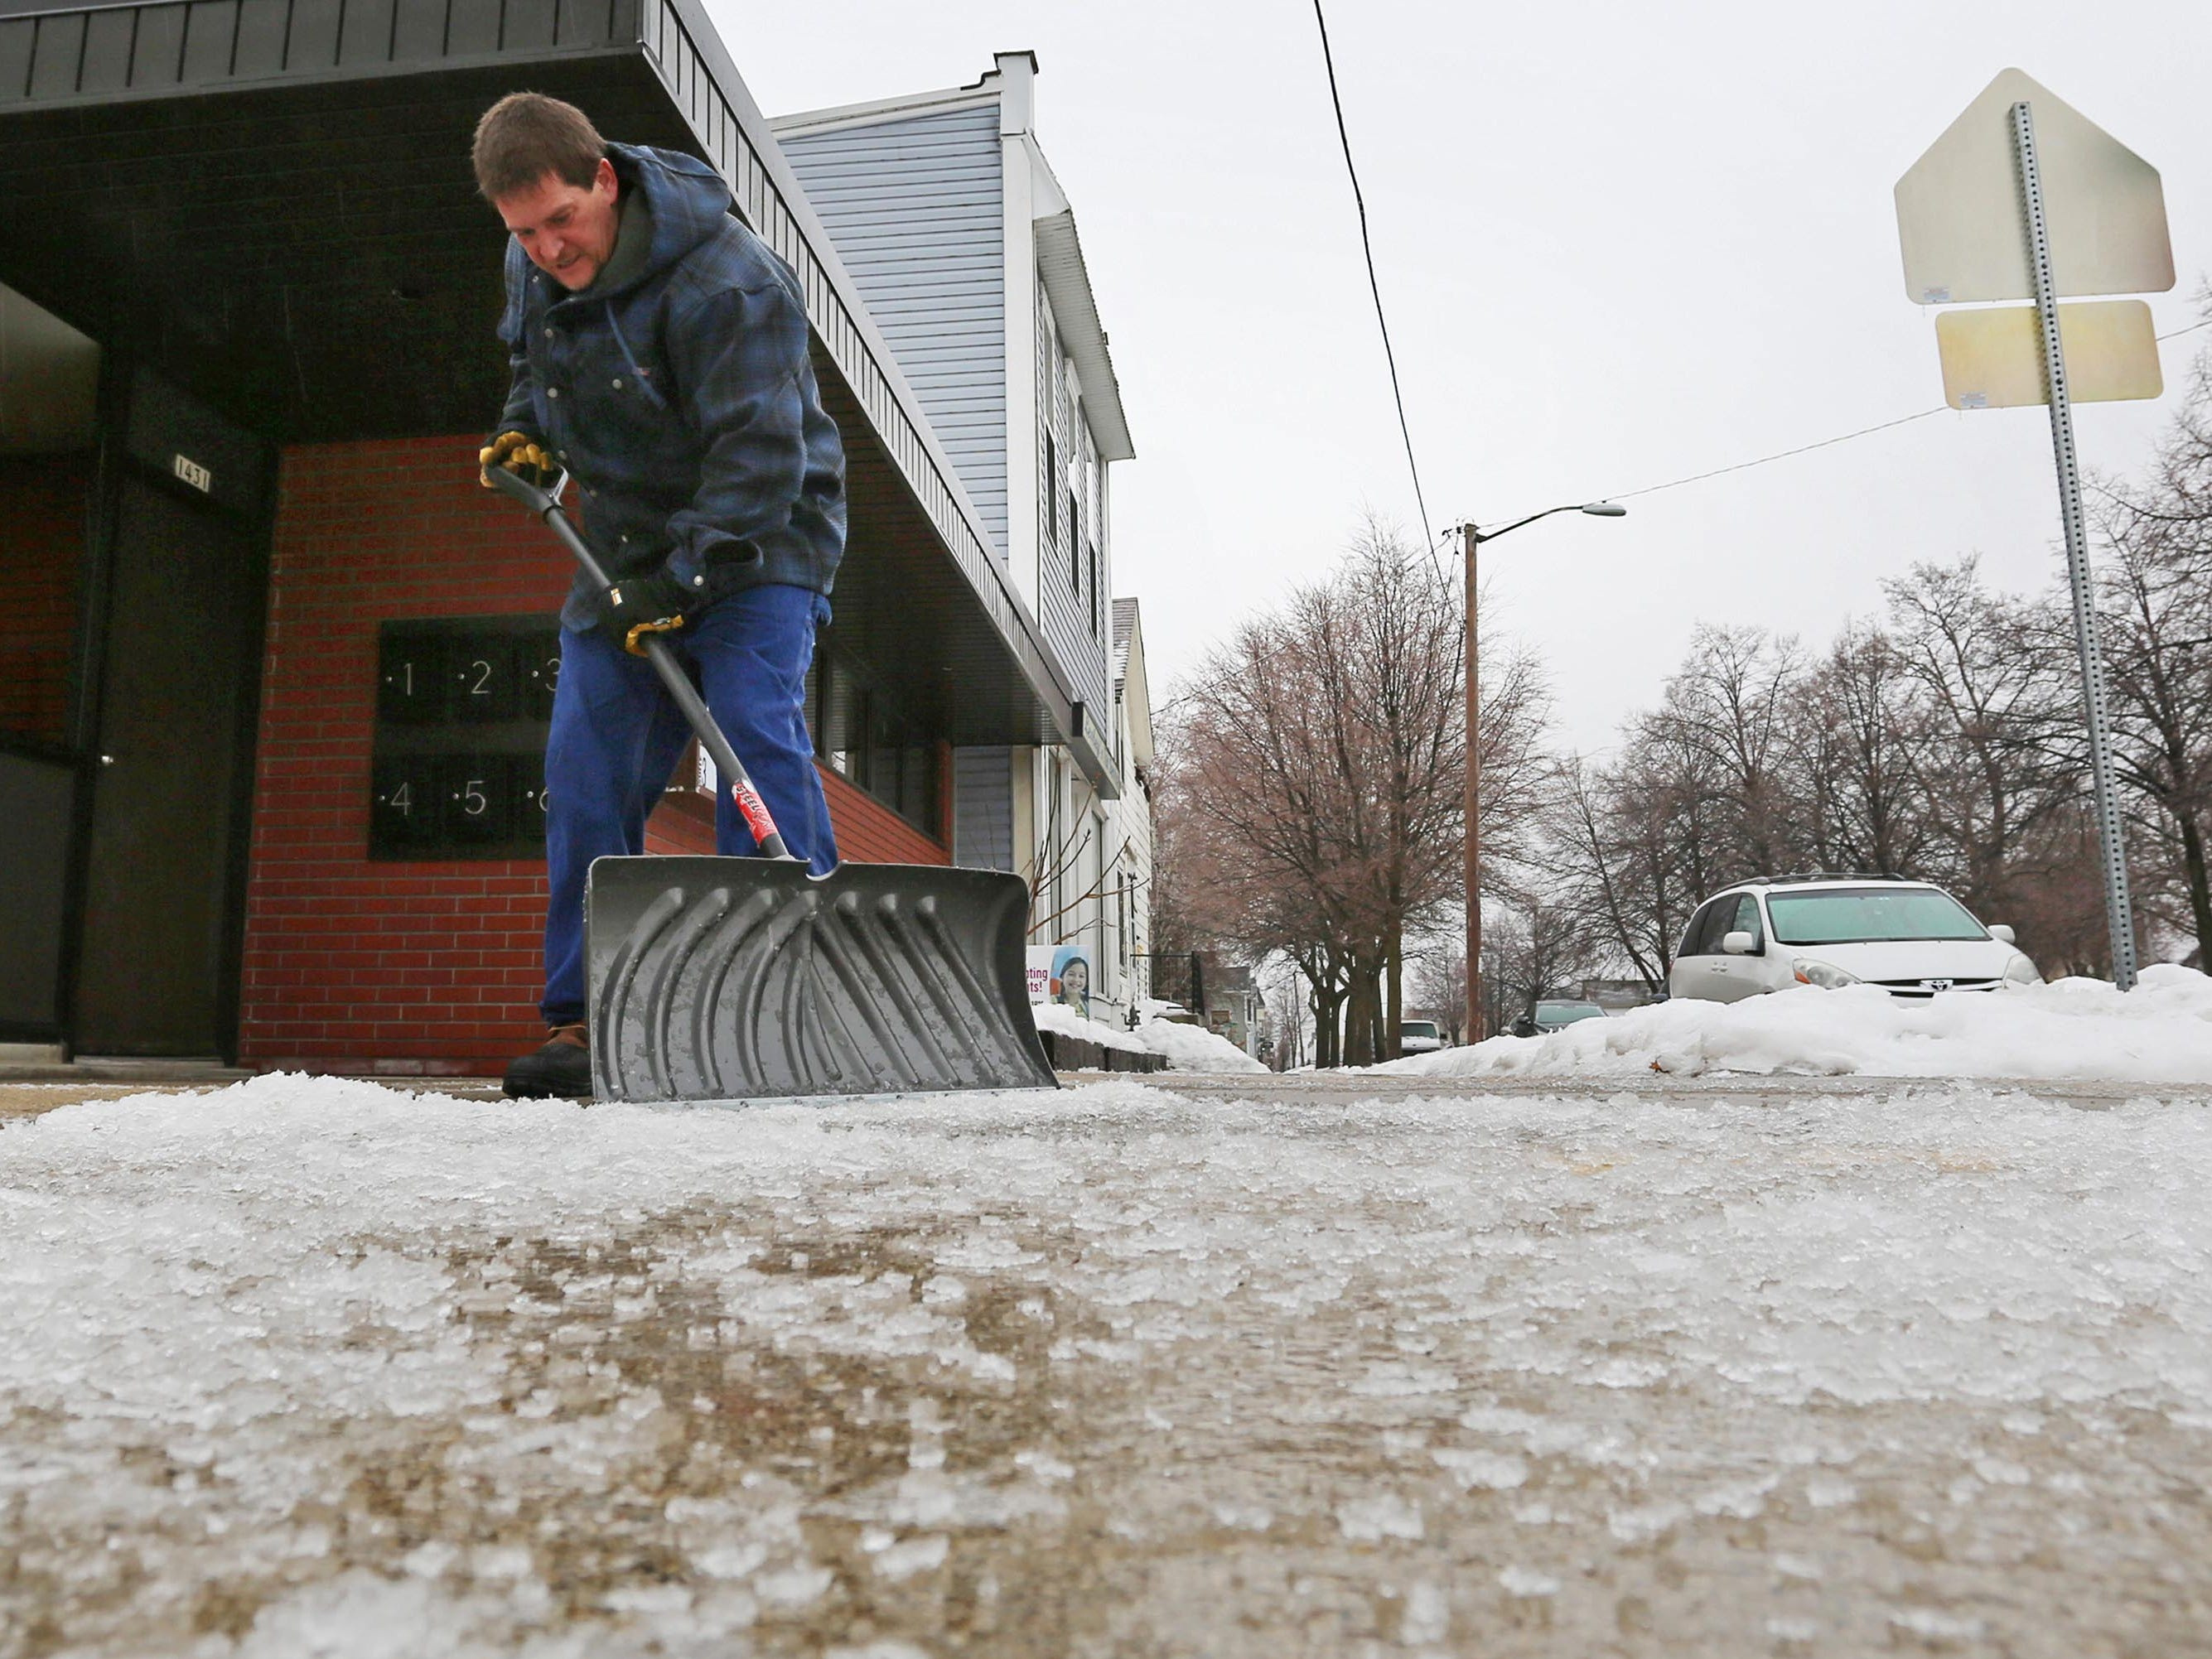 Dutcher Matyjasik scrapes off ice sidewalk at 8th and Superior Avenue, Tuesday, February 5, 2019, in Sheboygan, Wis. 